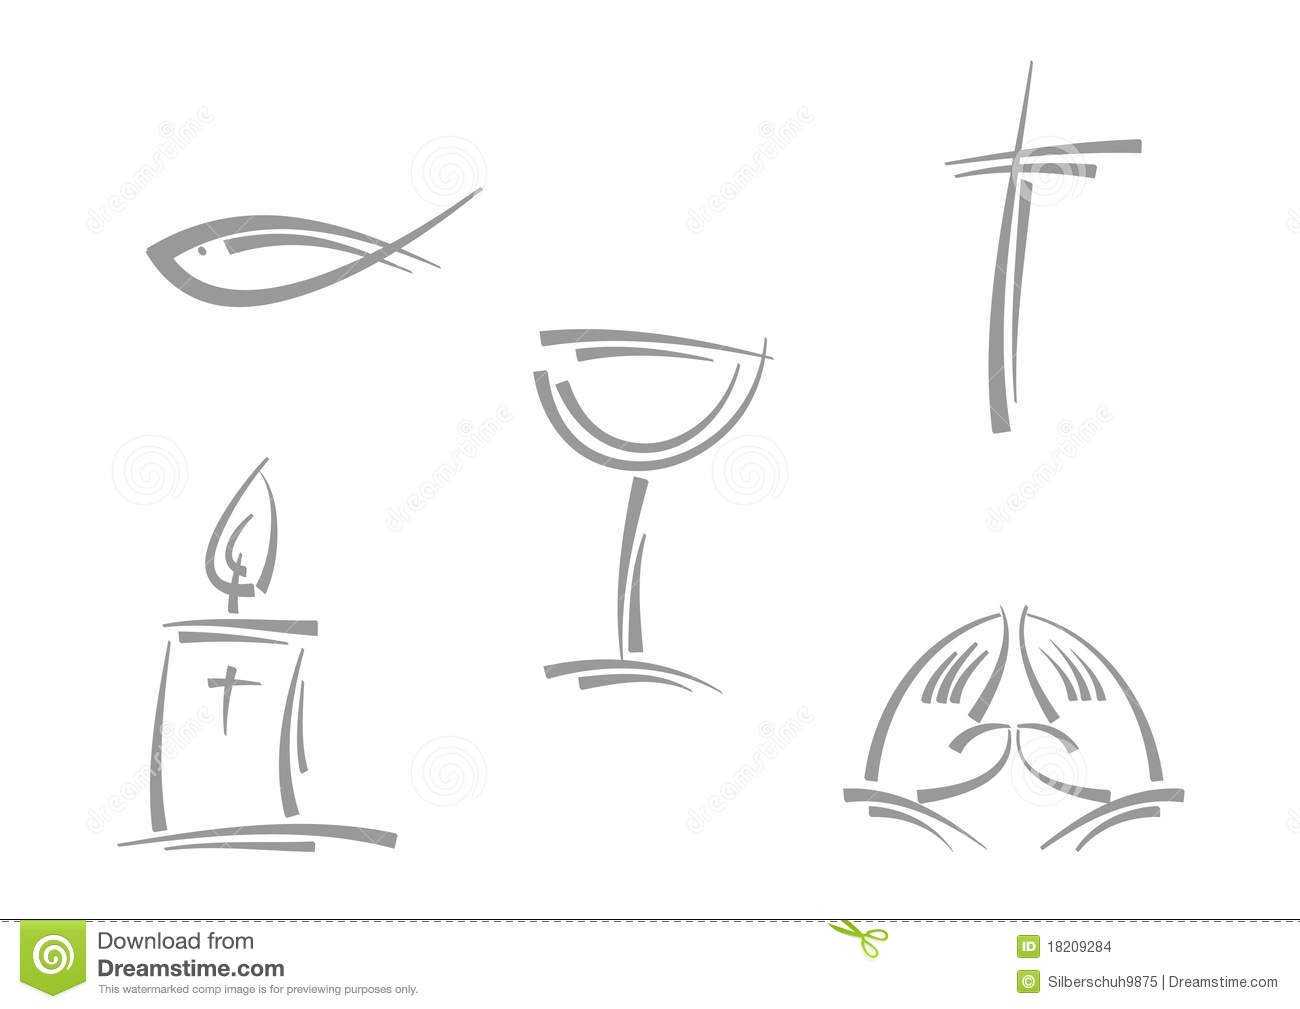 Nine Expressions of Worship